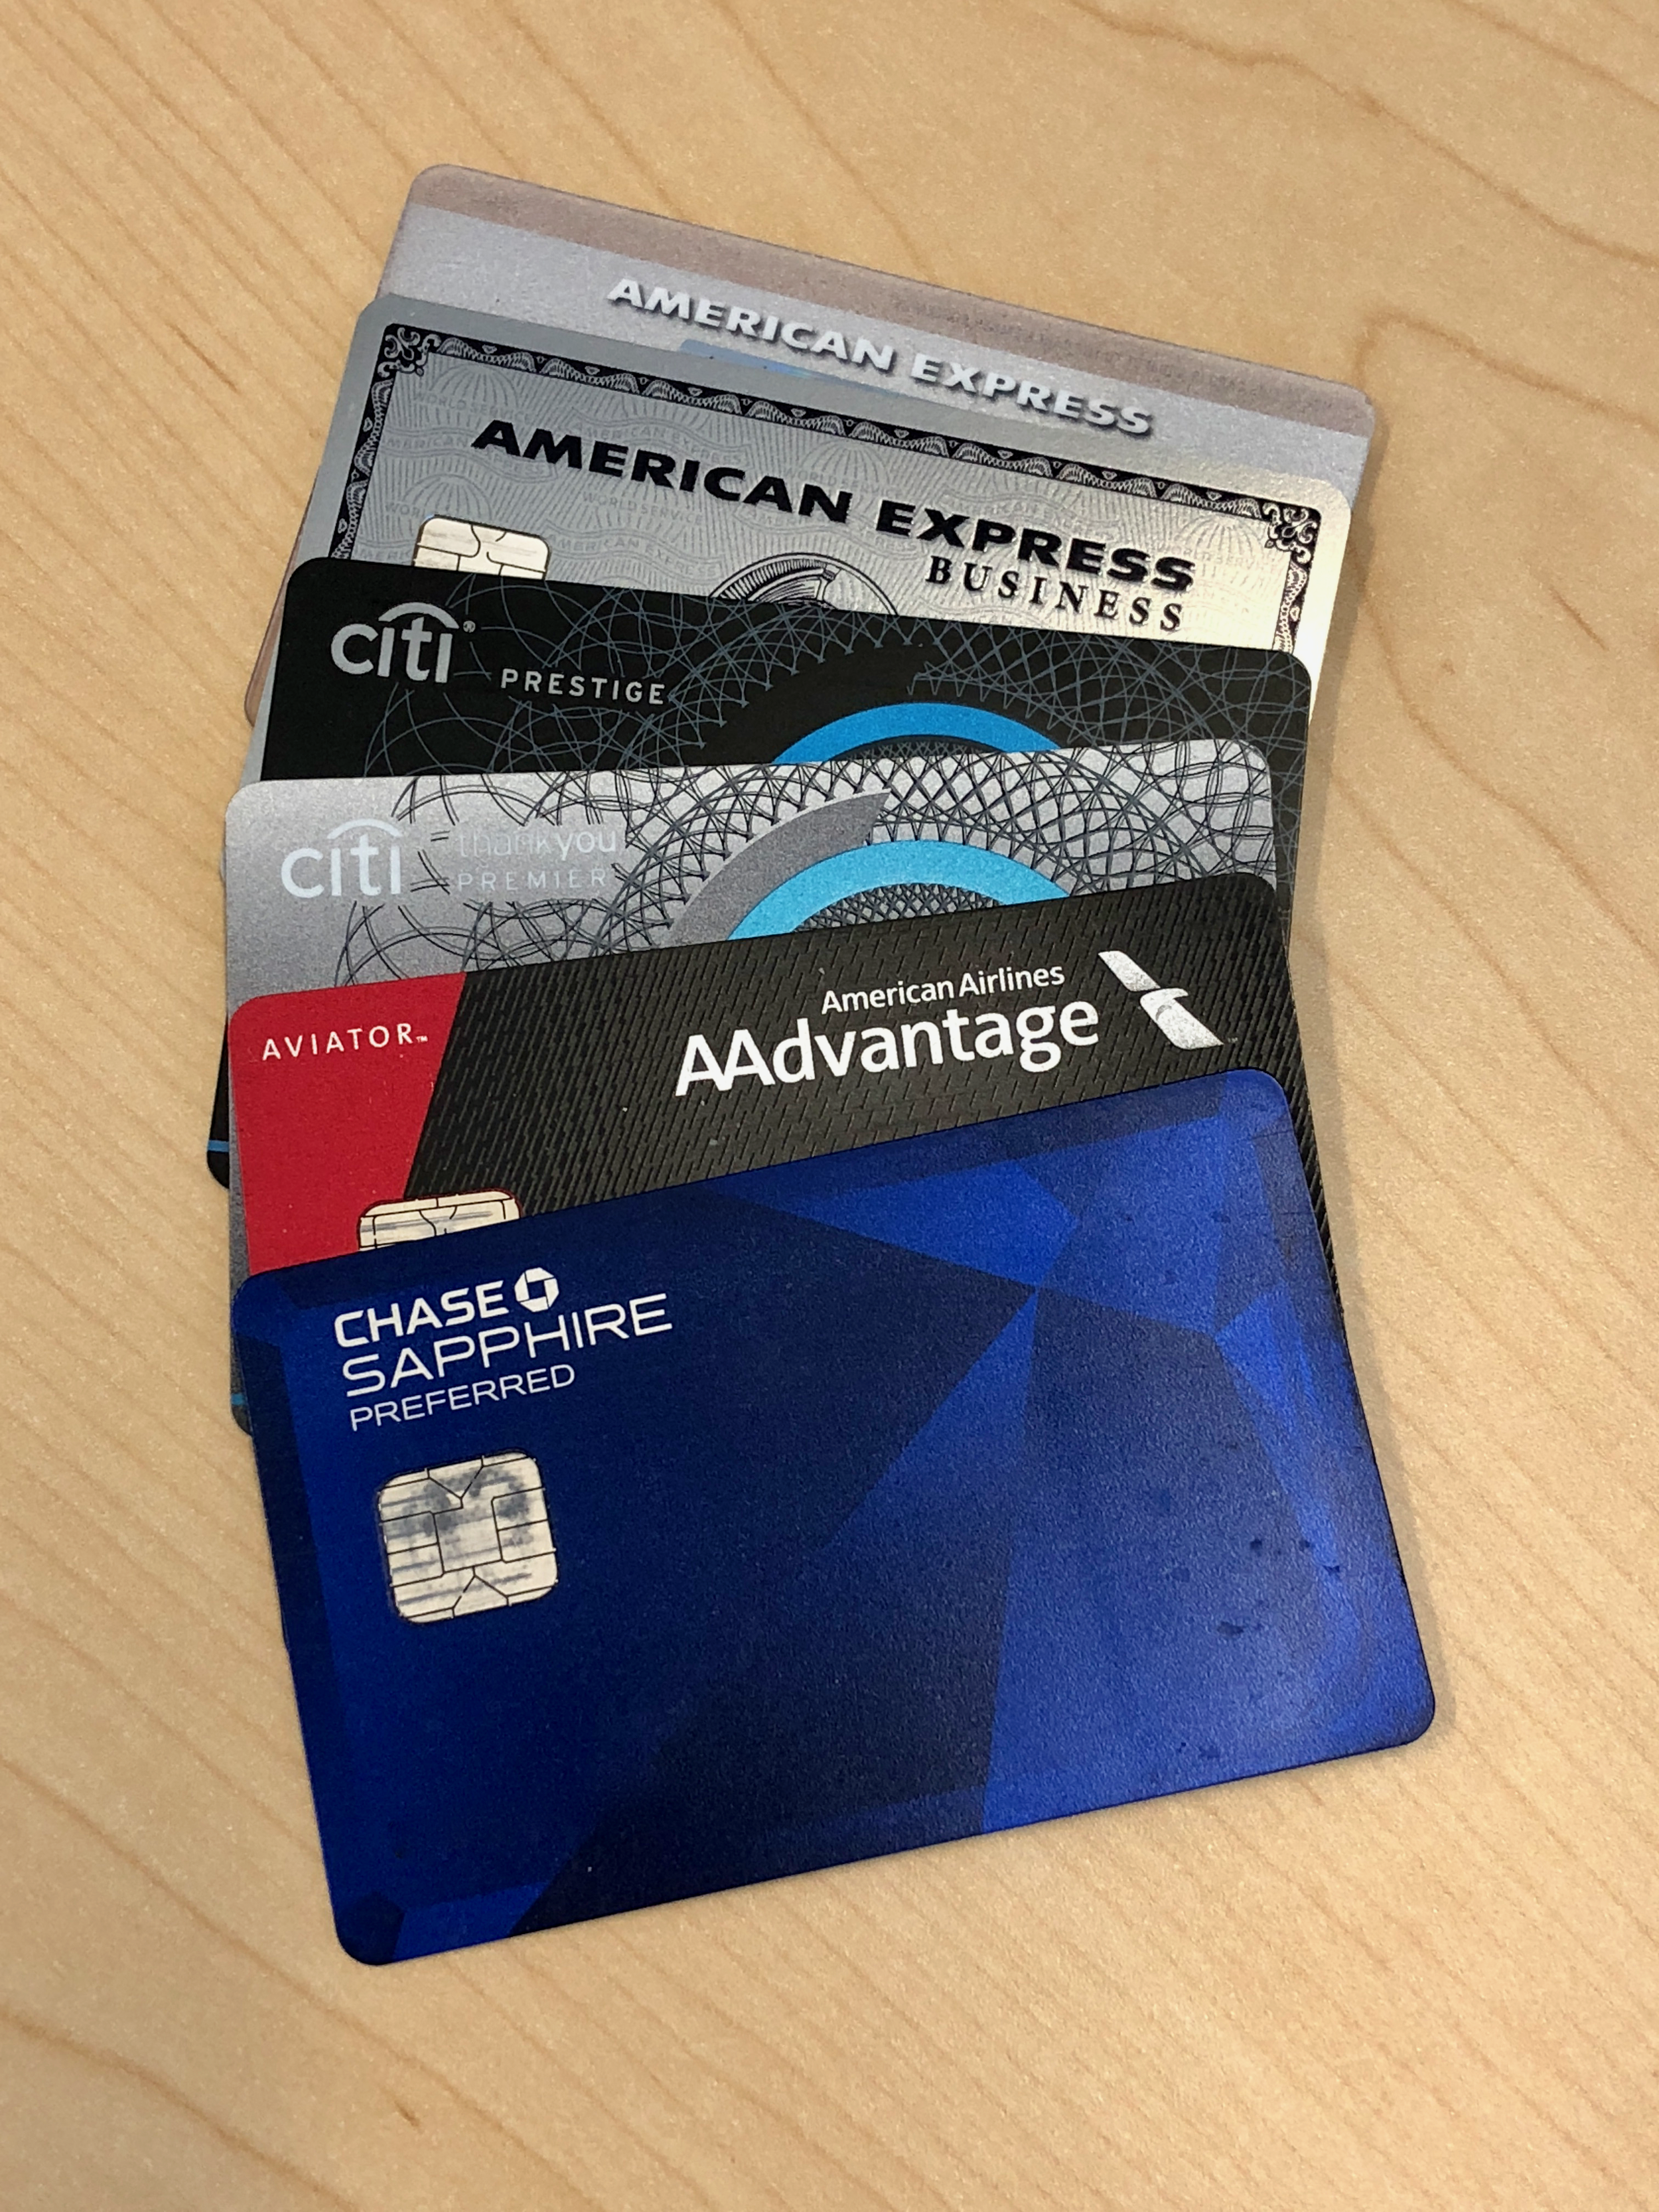 The cards I currently carry in my wallet are only a small part of my overall credit card portfolio!